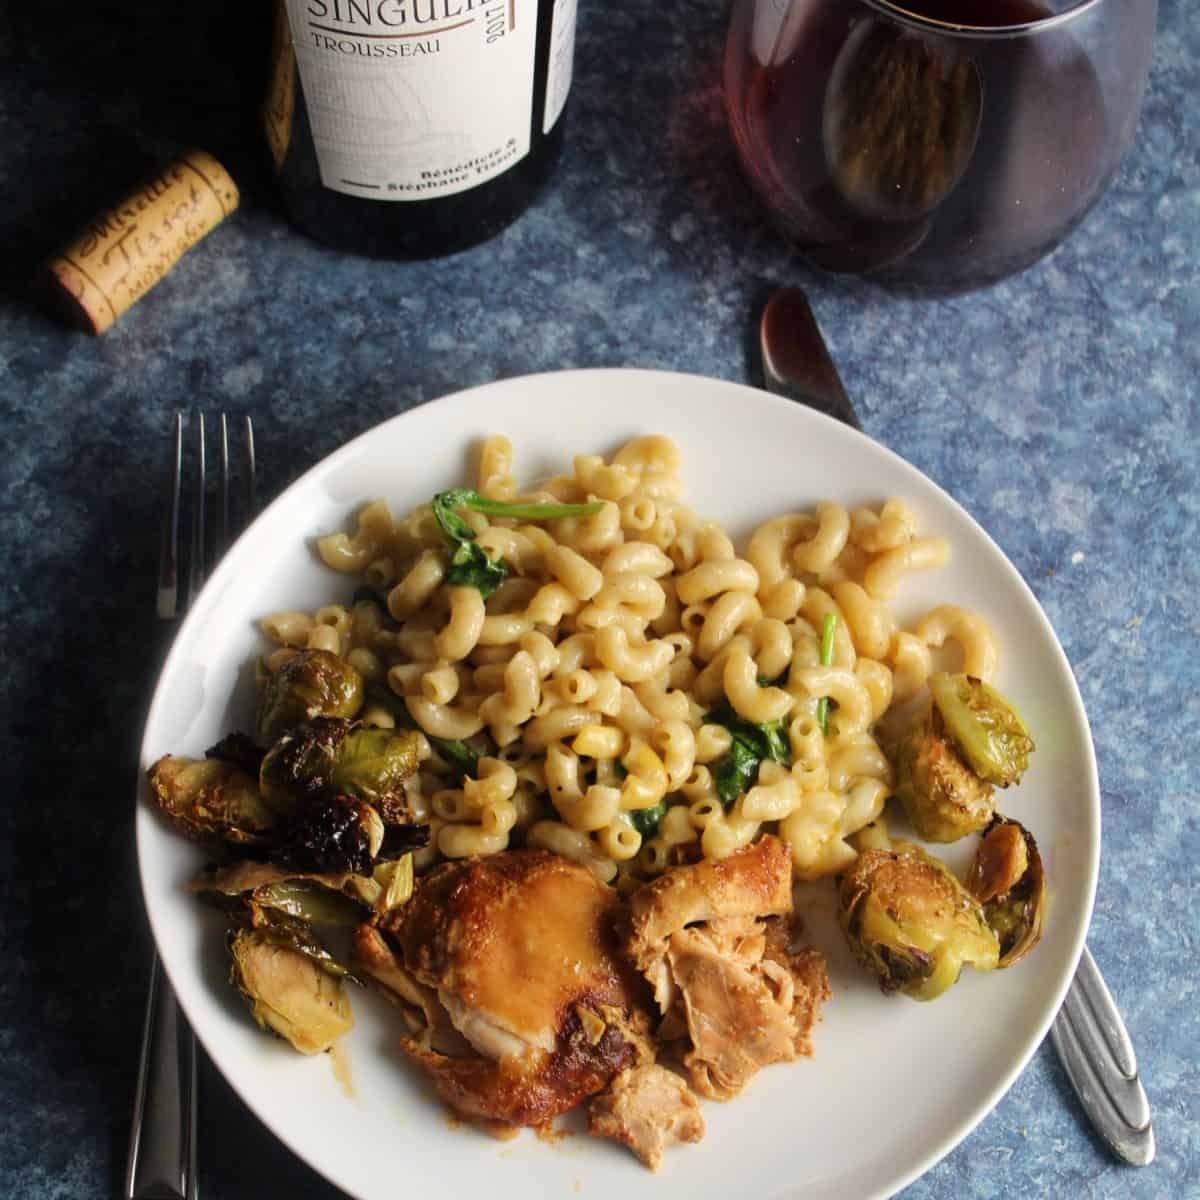 slow cooker BBQ chicken thights served with baked pasta, Brussels sprouts and red wine.